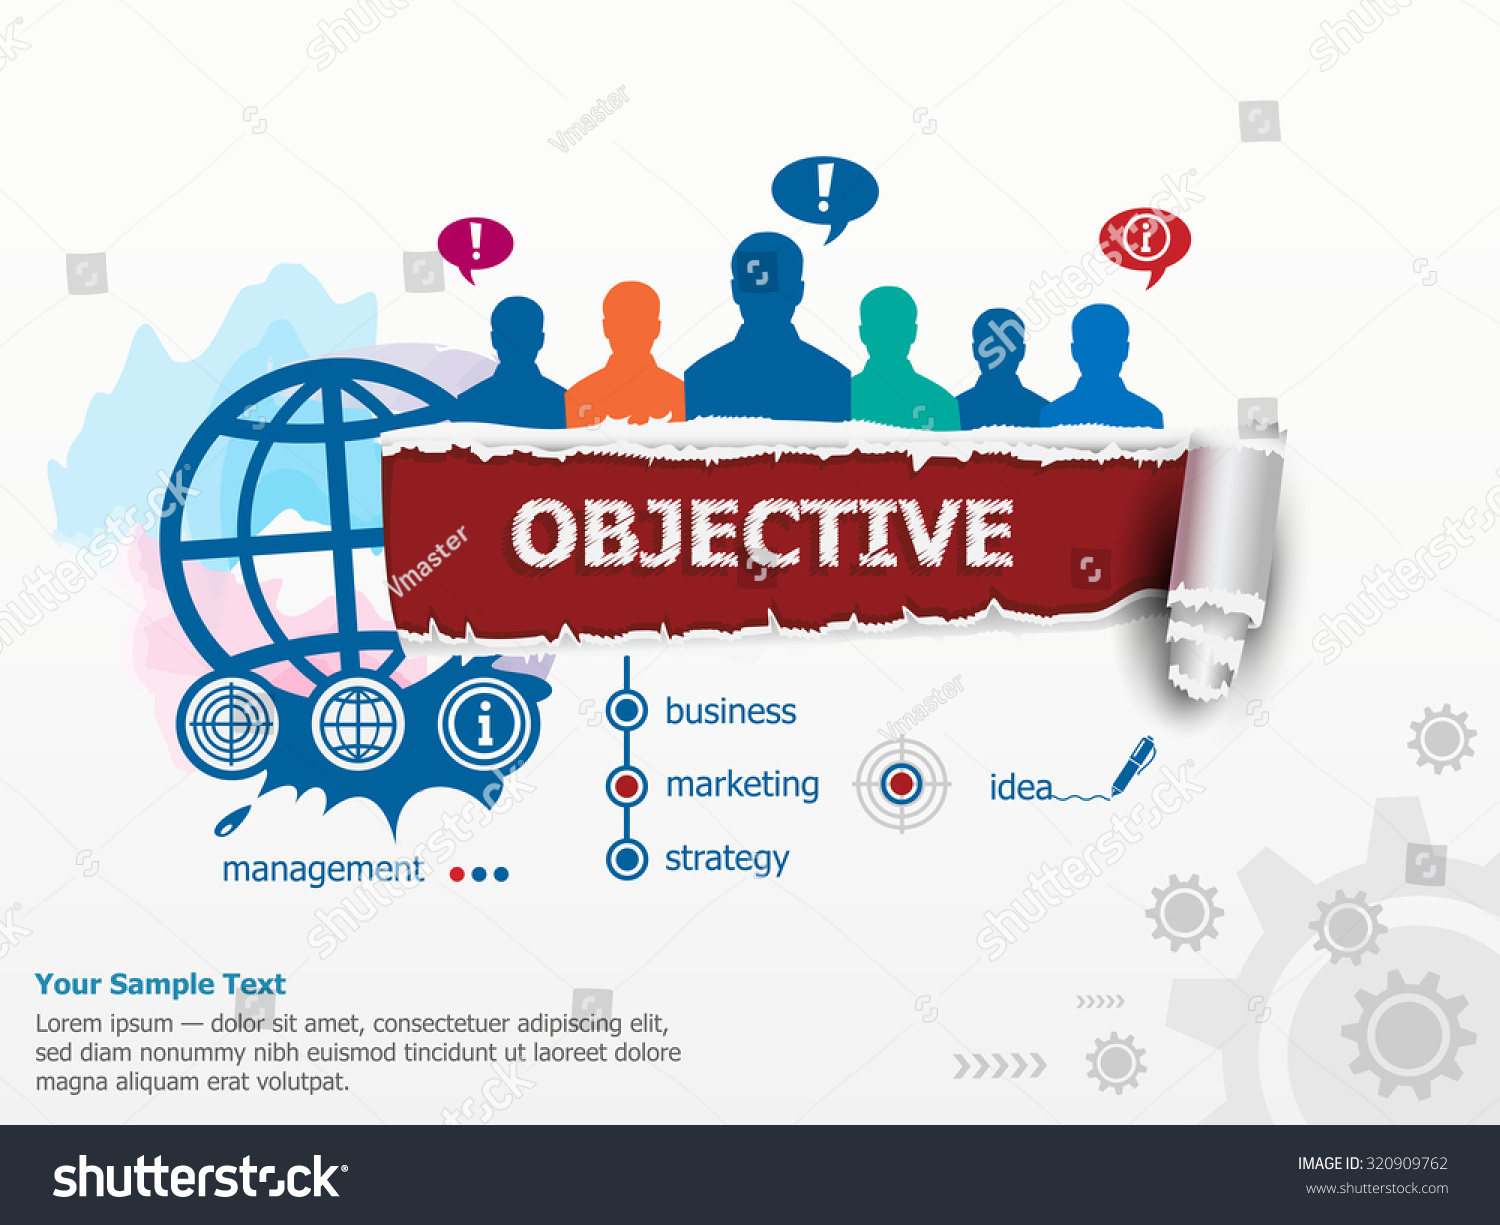 objective concept group people set flat stock vector  objective concept and group of people set of flat design illustration concepts for business